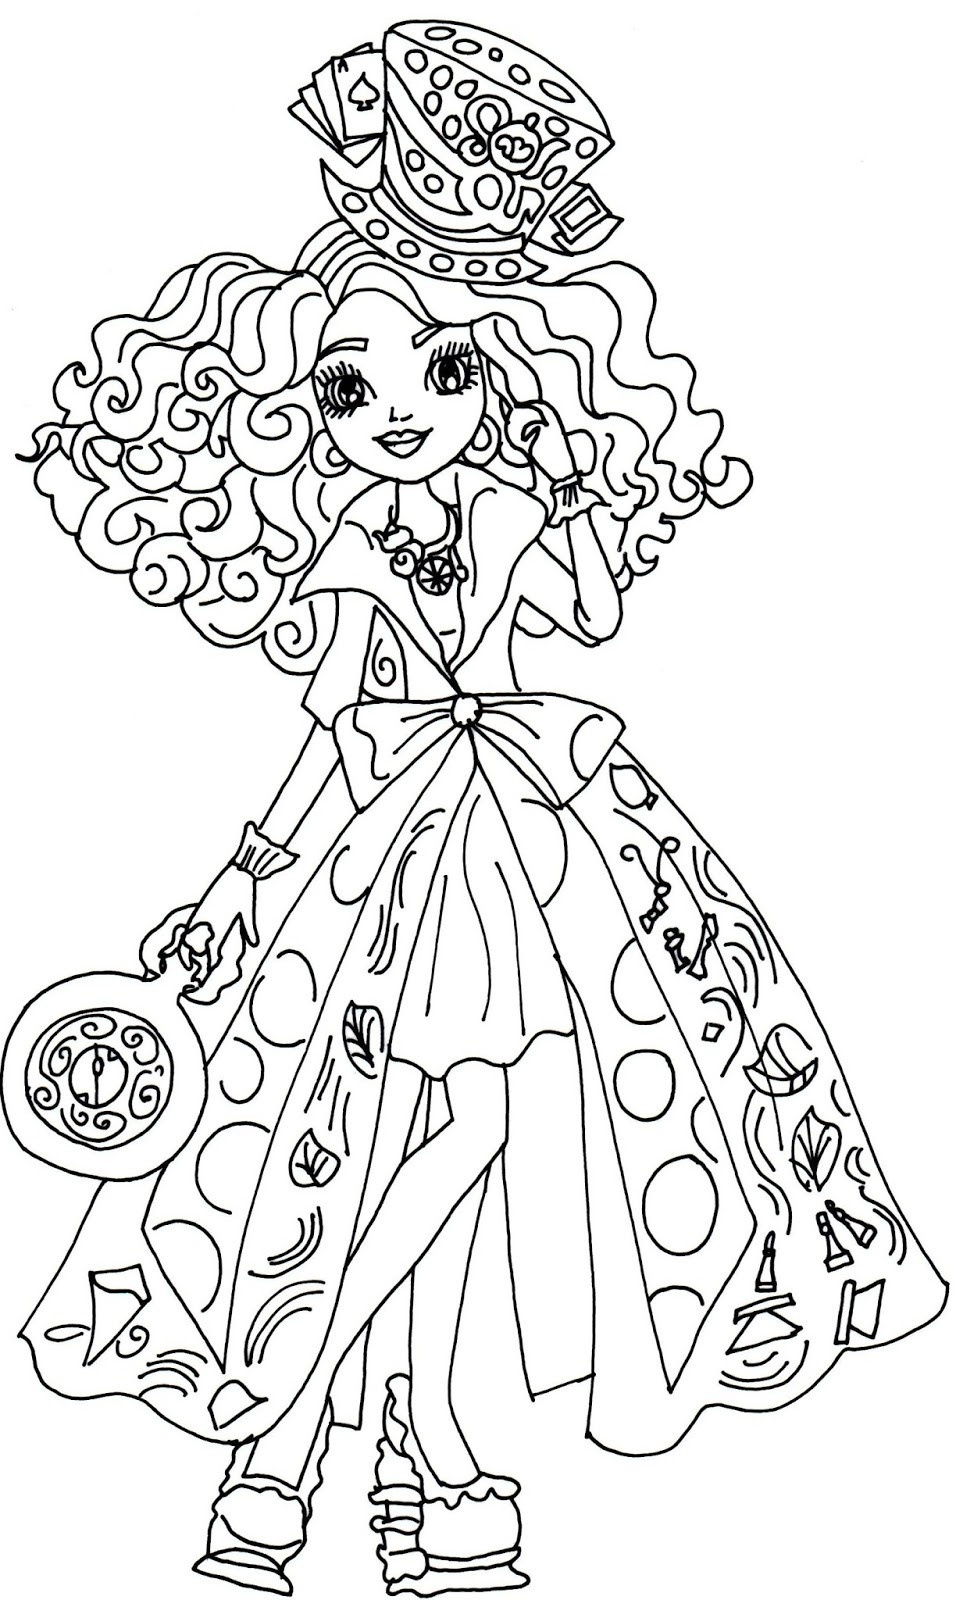 Printable Coloring Sheets Free  Ever After High Coloring Pages Best Coloring Pages For Kids